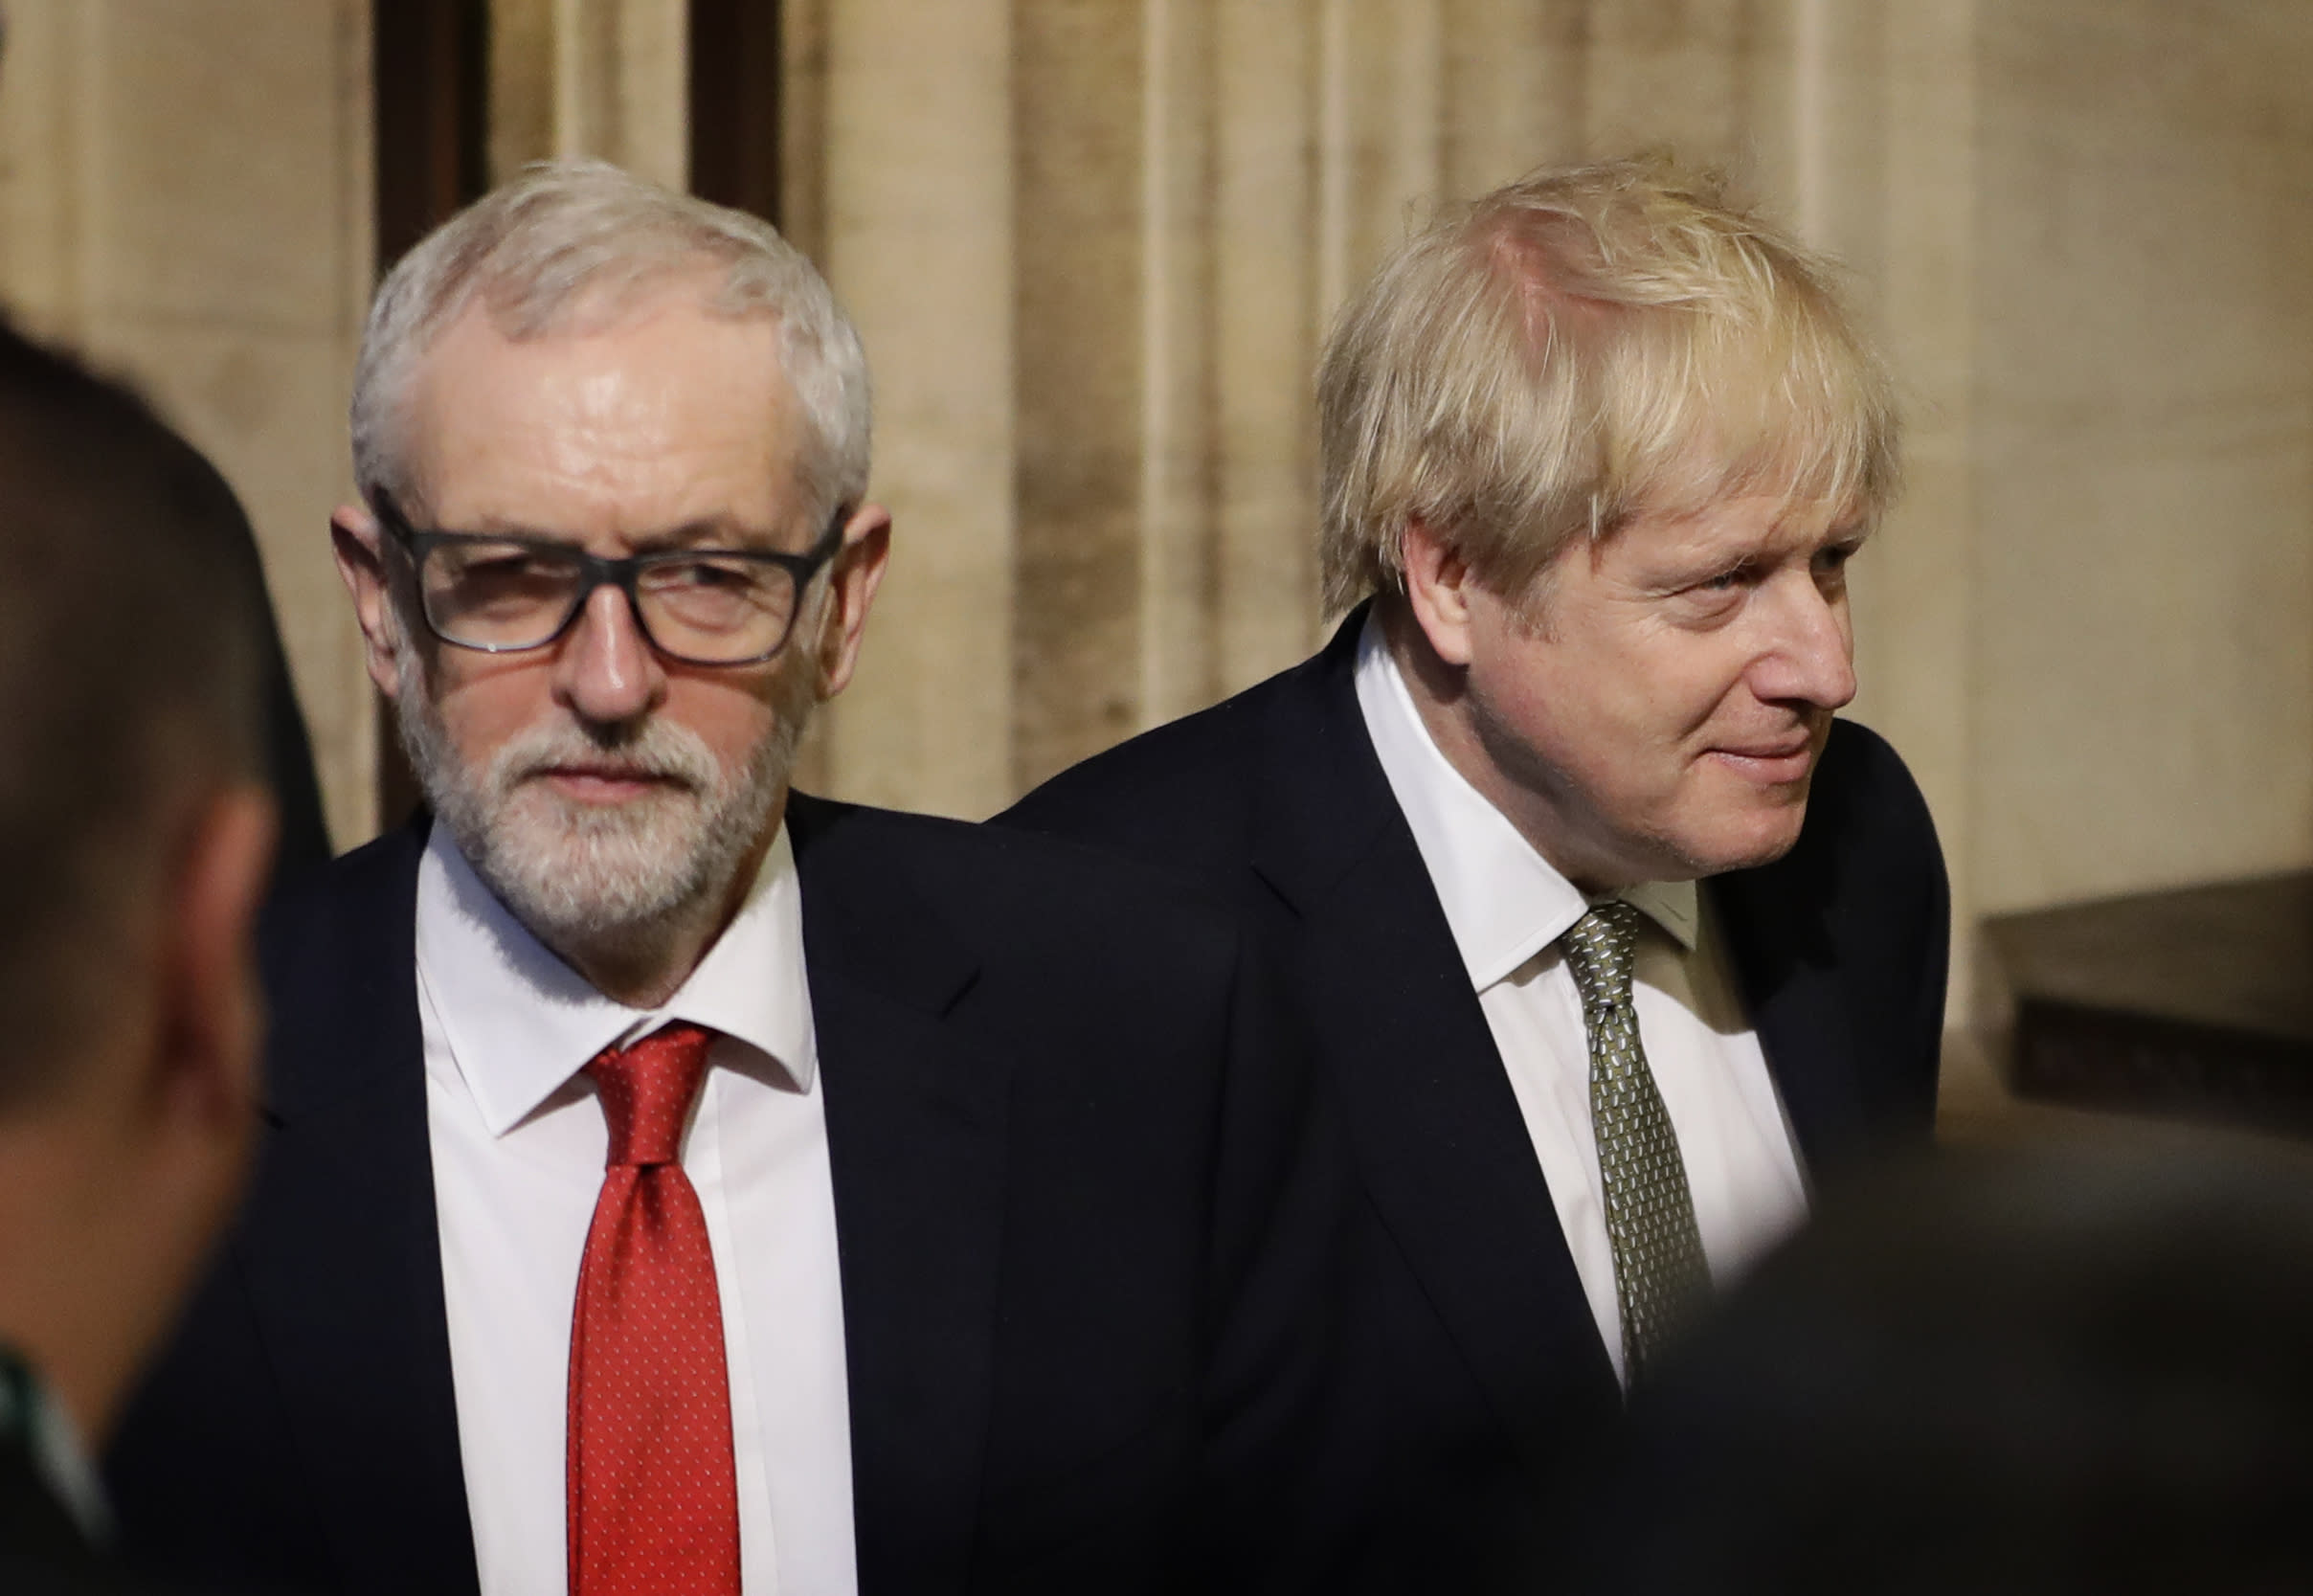 Squeezed out British Labor MPs call for 'fundamental change' in party leadership